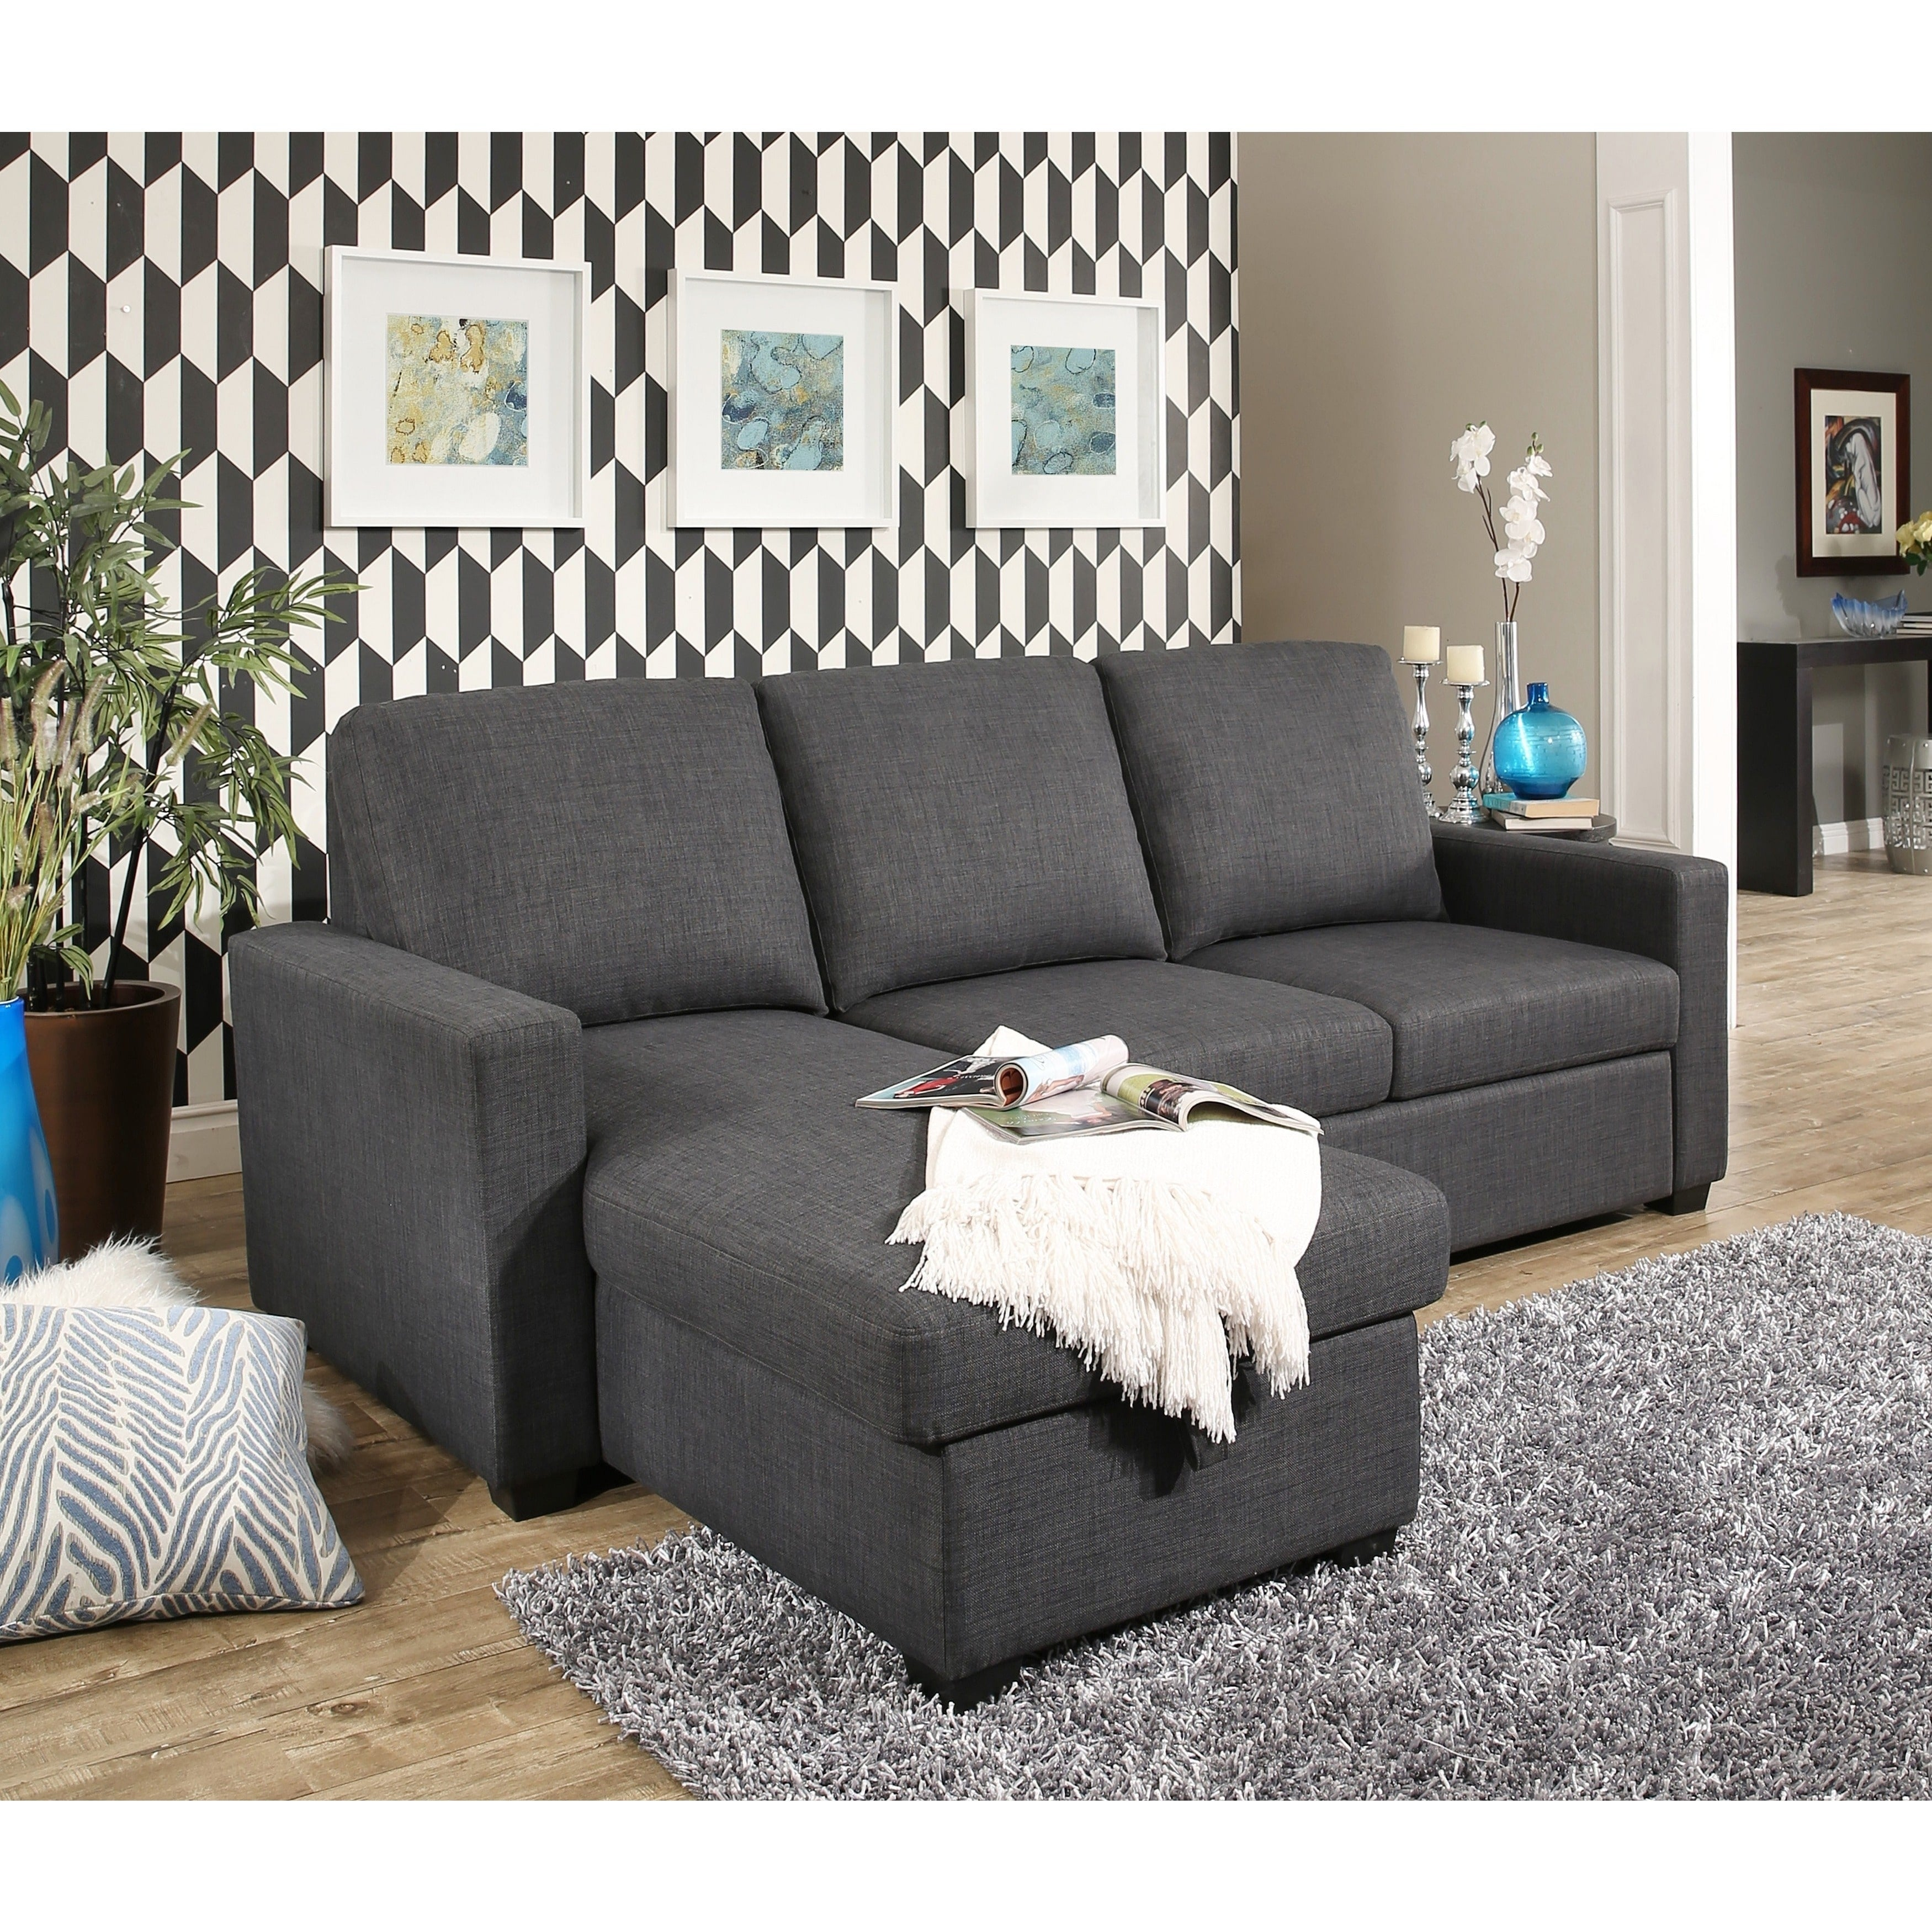 ideas interior in design with styles home sectional chaise coolest dual stunning